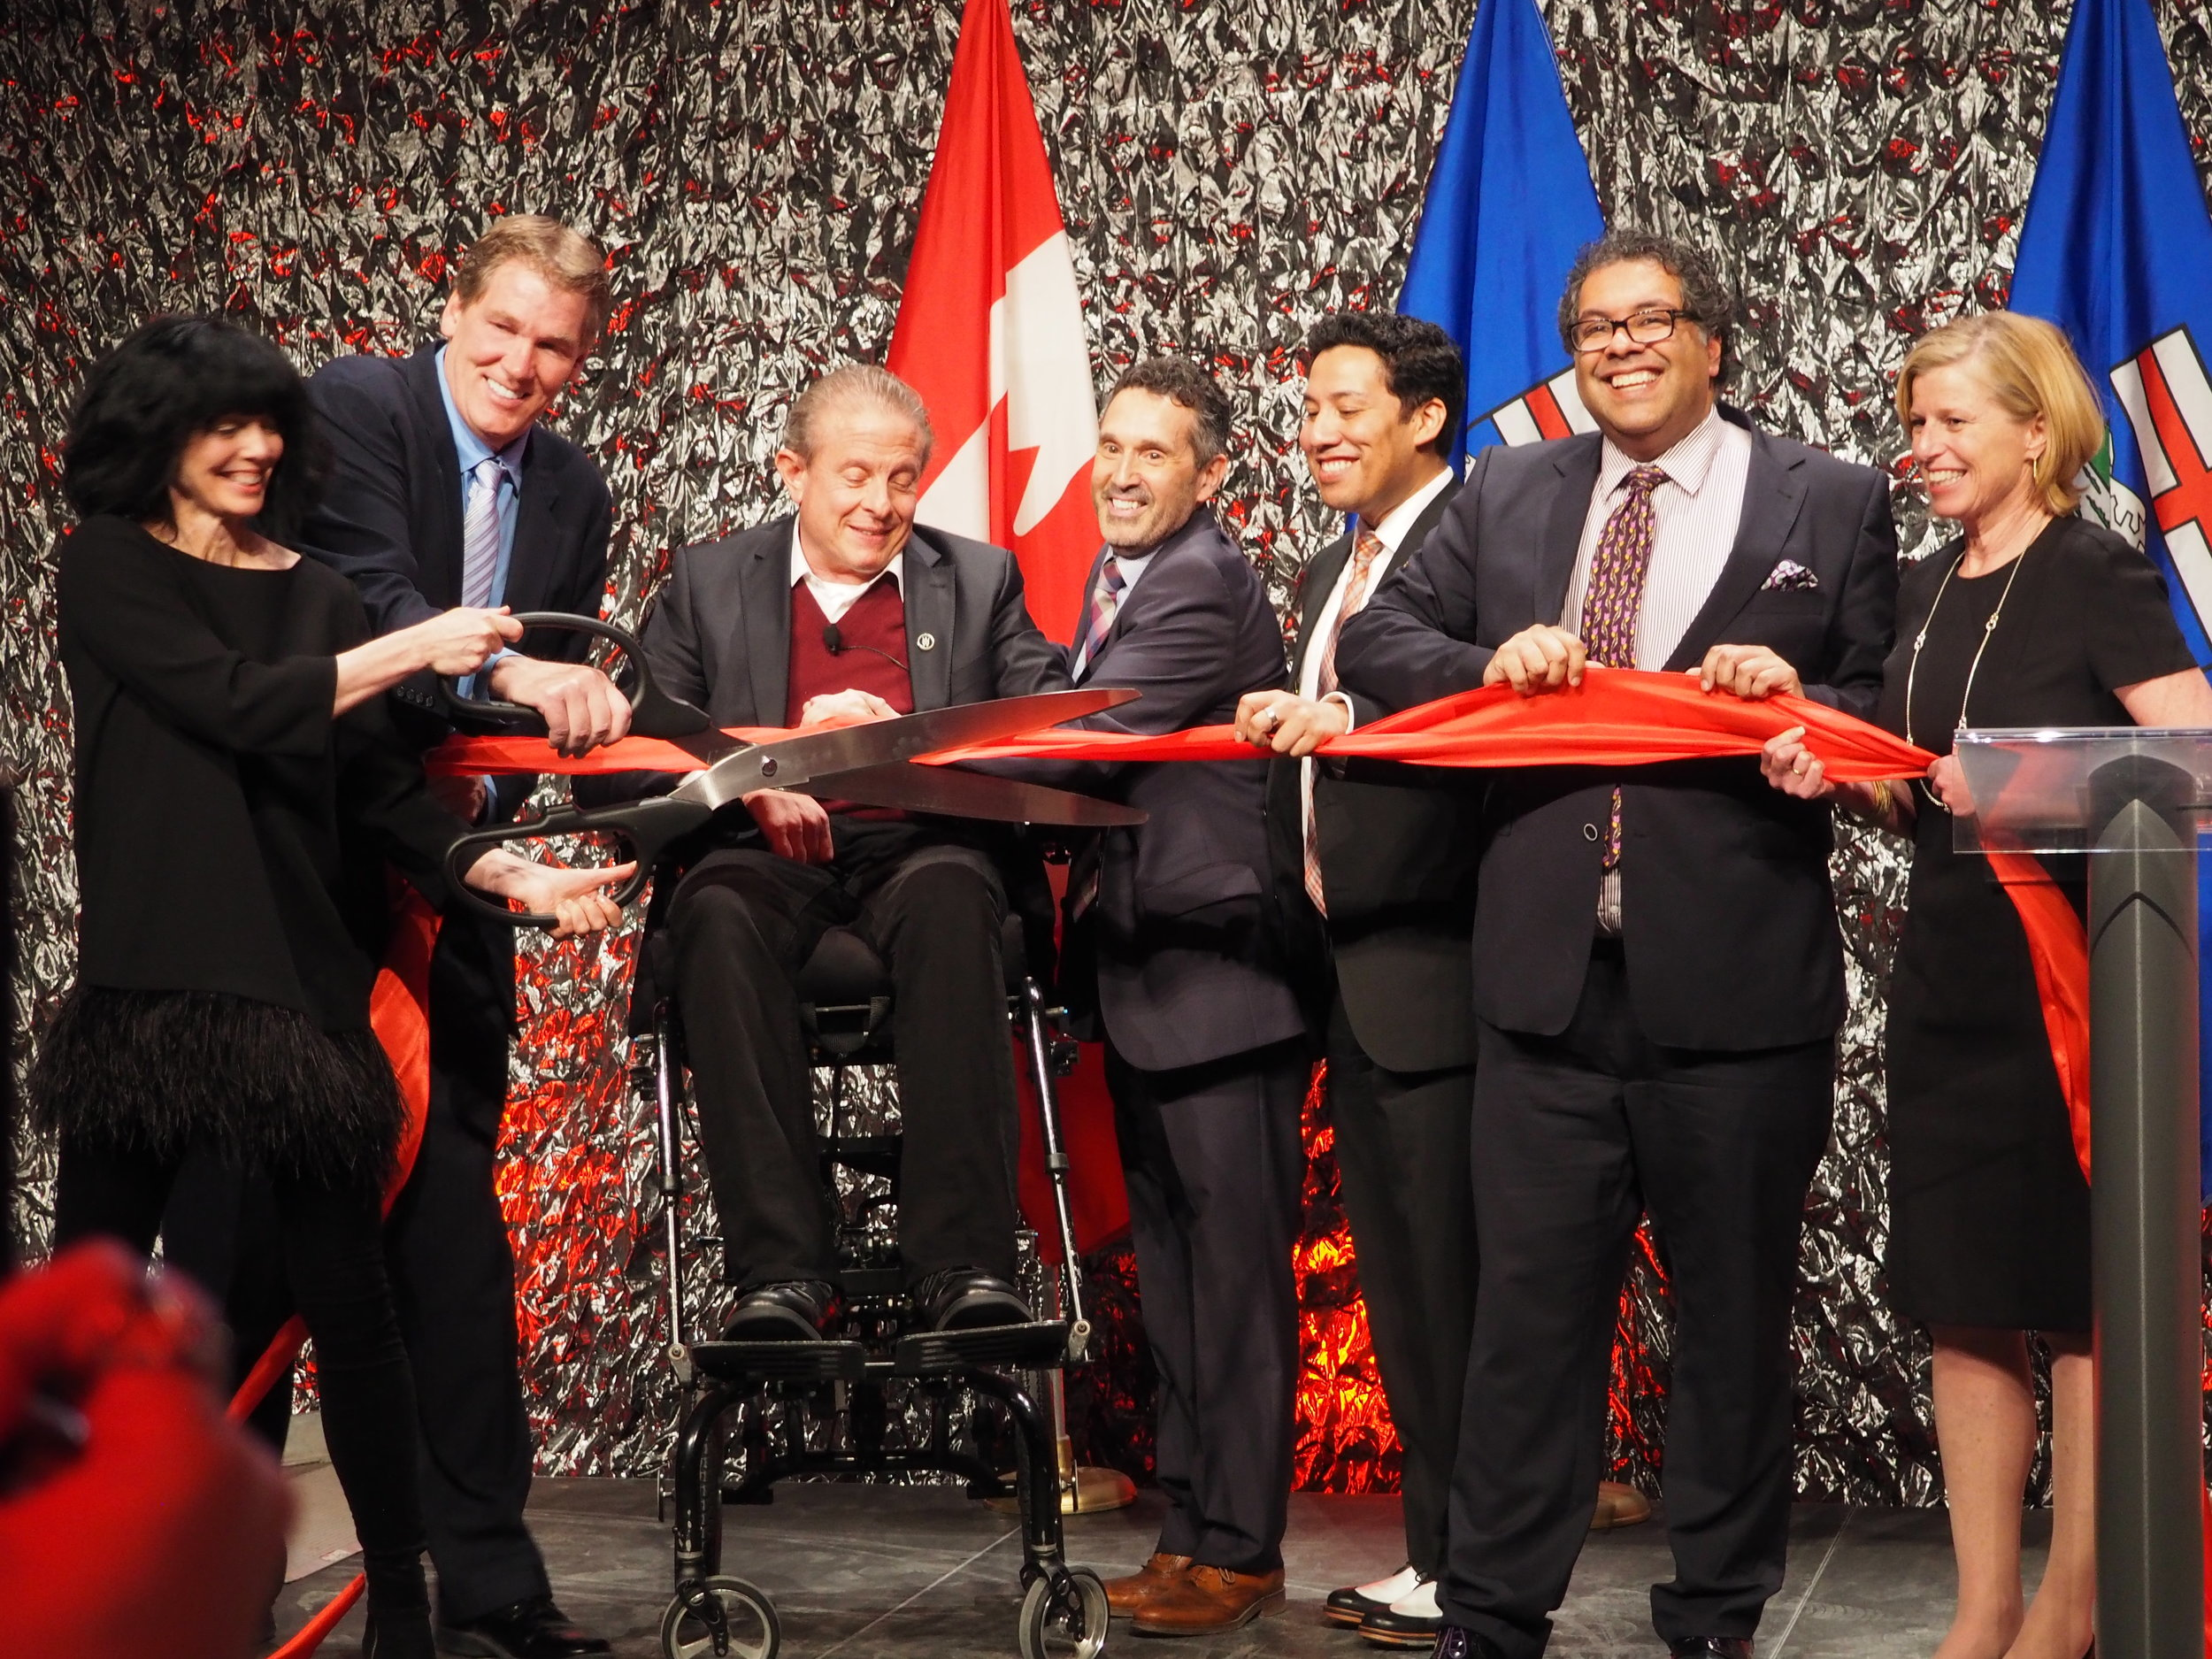 Grand Opening of the Calgary Film Centre, May 19, 2016